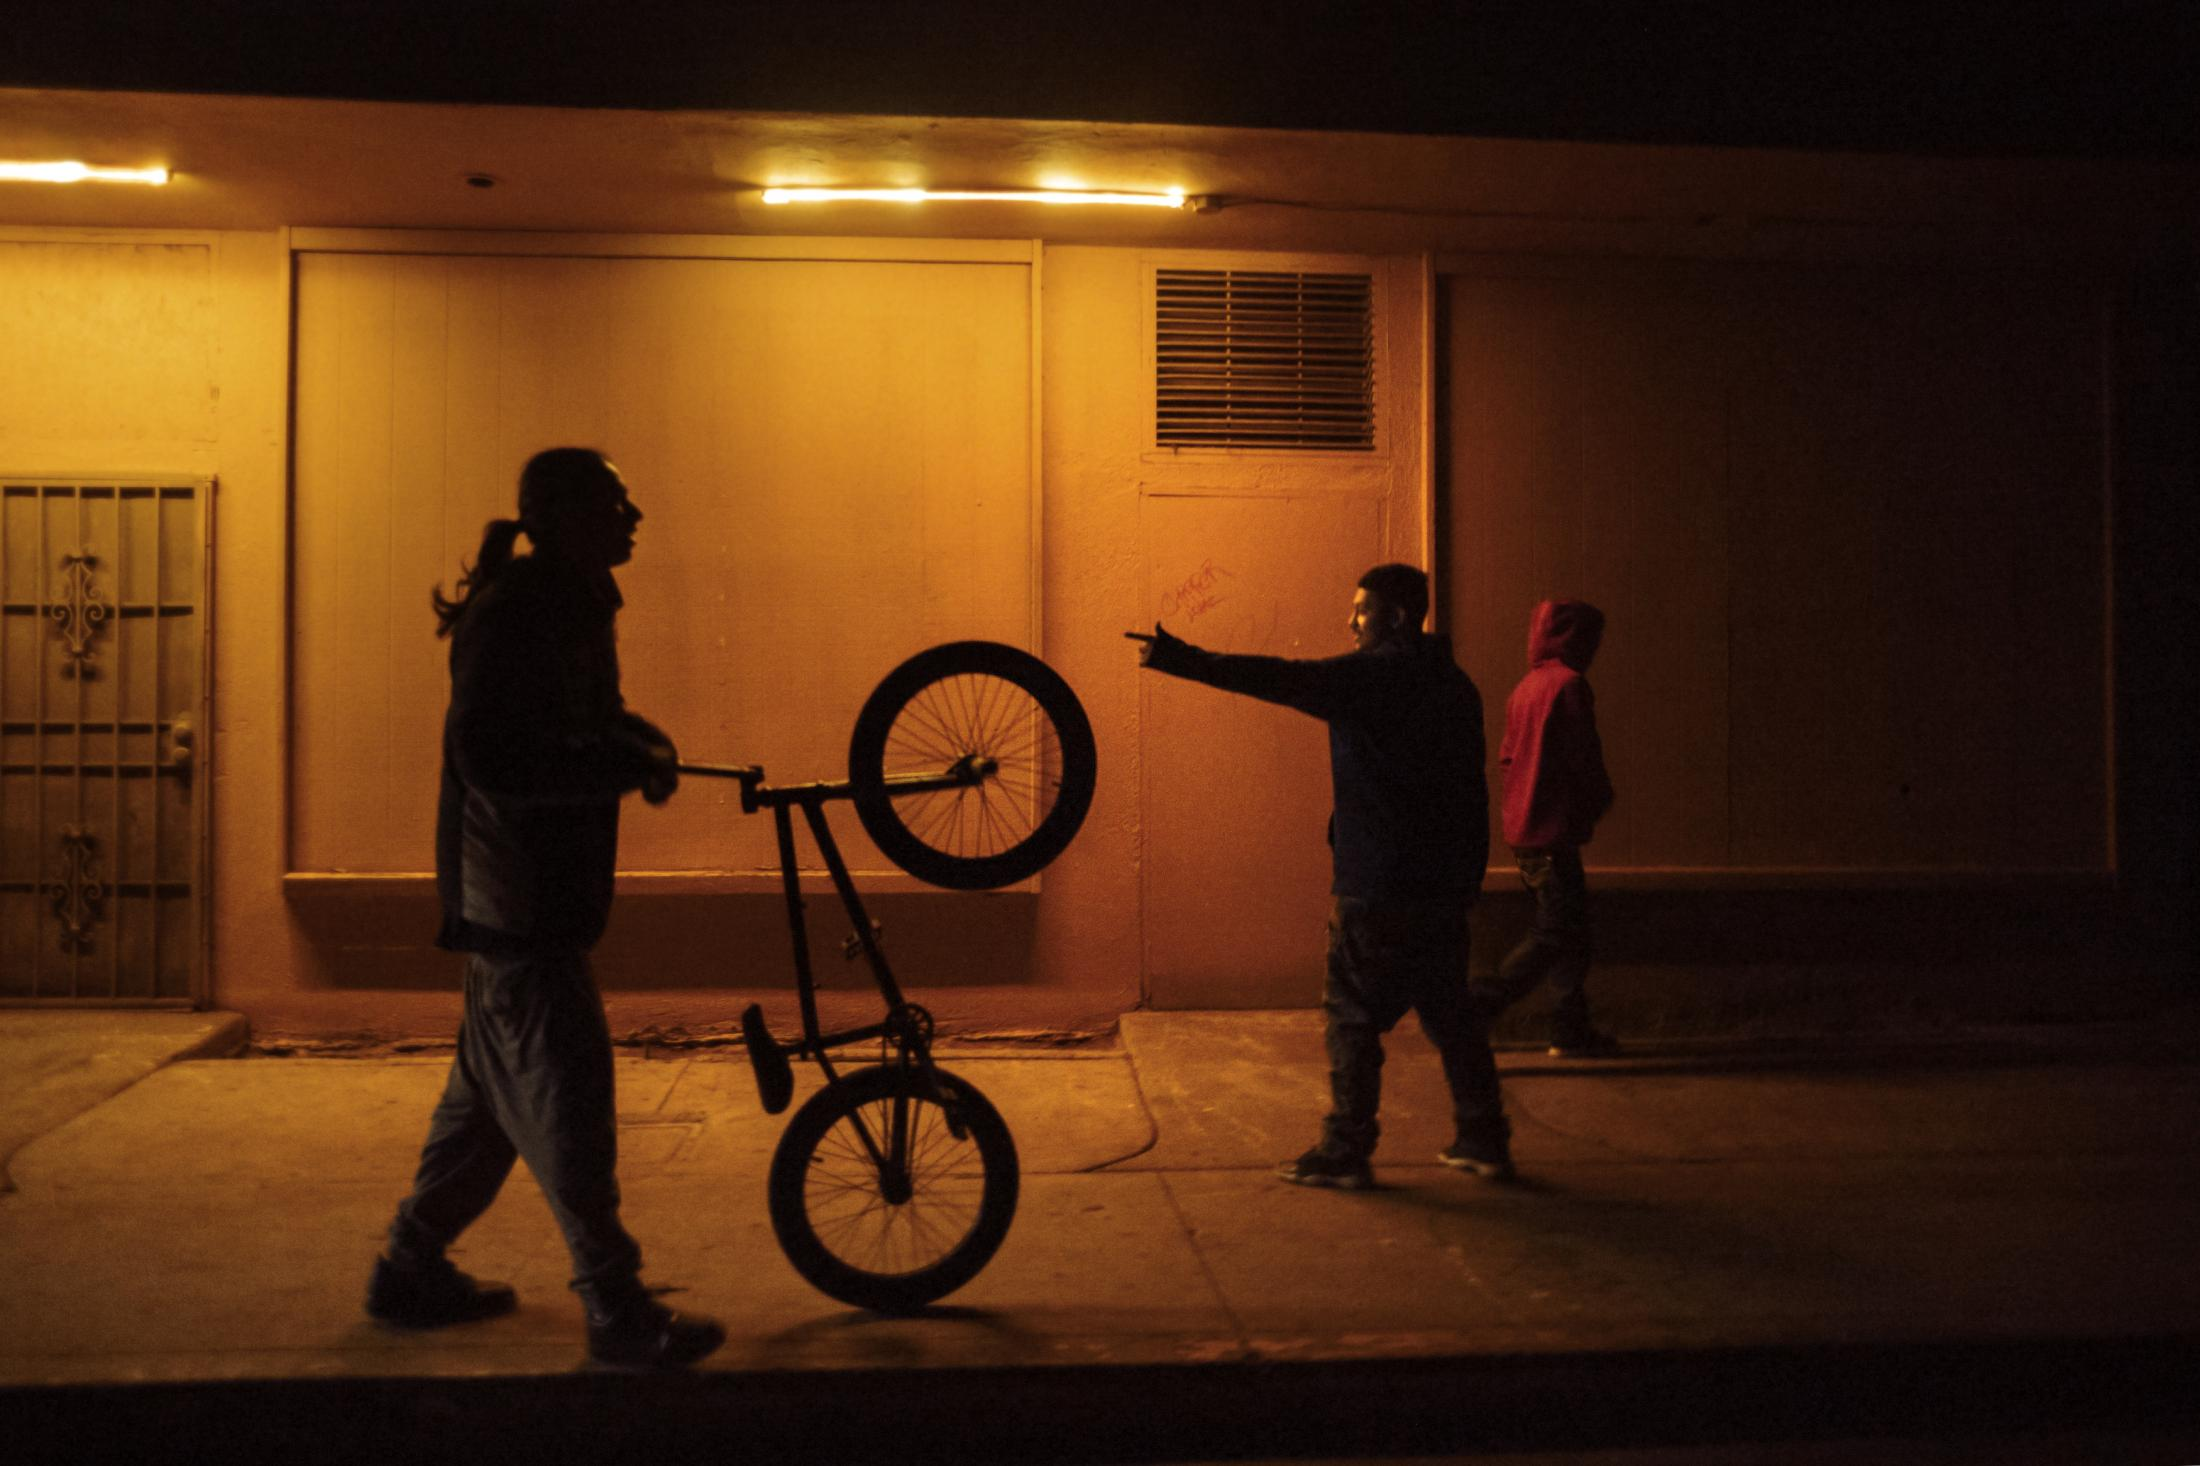 TRG (Tiny Rascal Gang) gang members quickly leave an area as one of their members is questioned by a MAGEC (gang unit) police officer in Fresno.